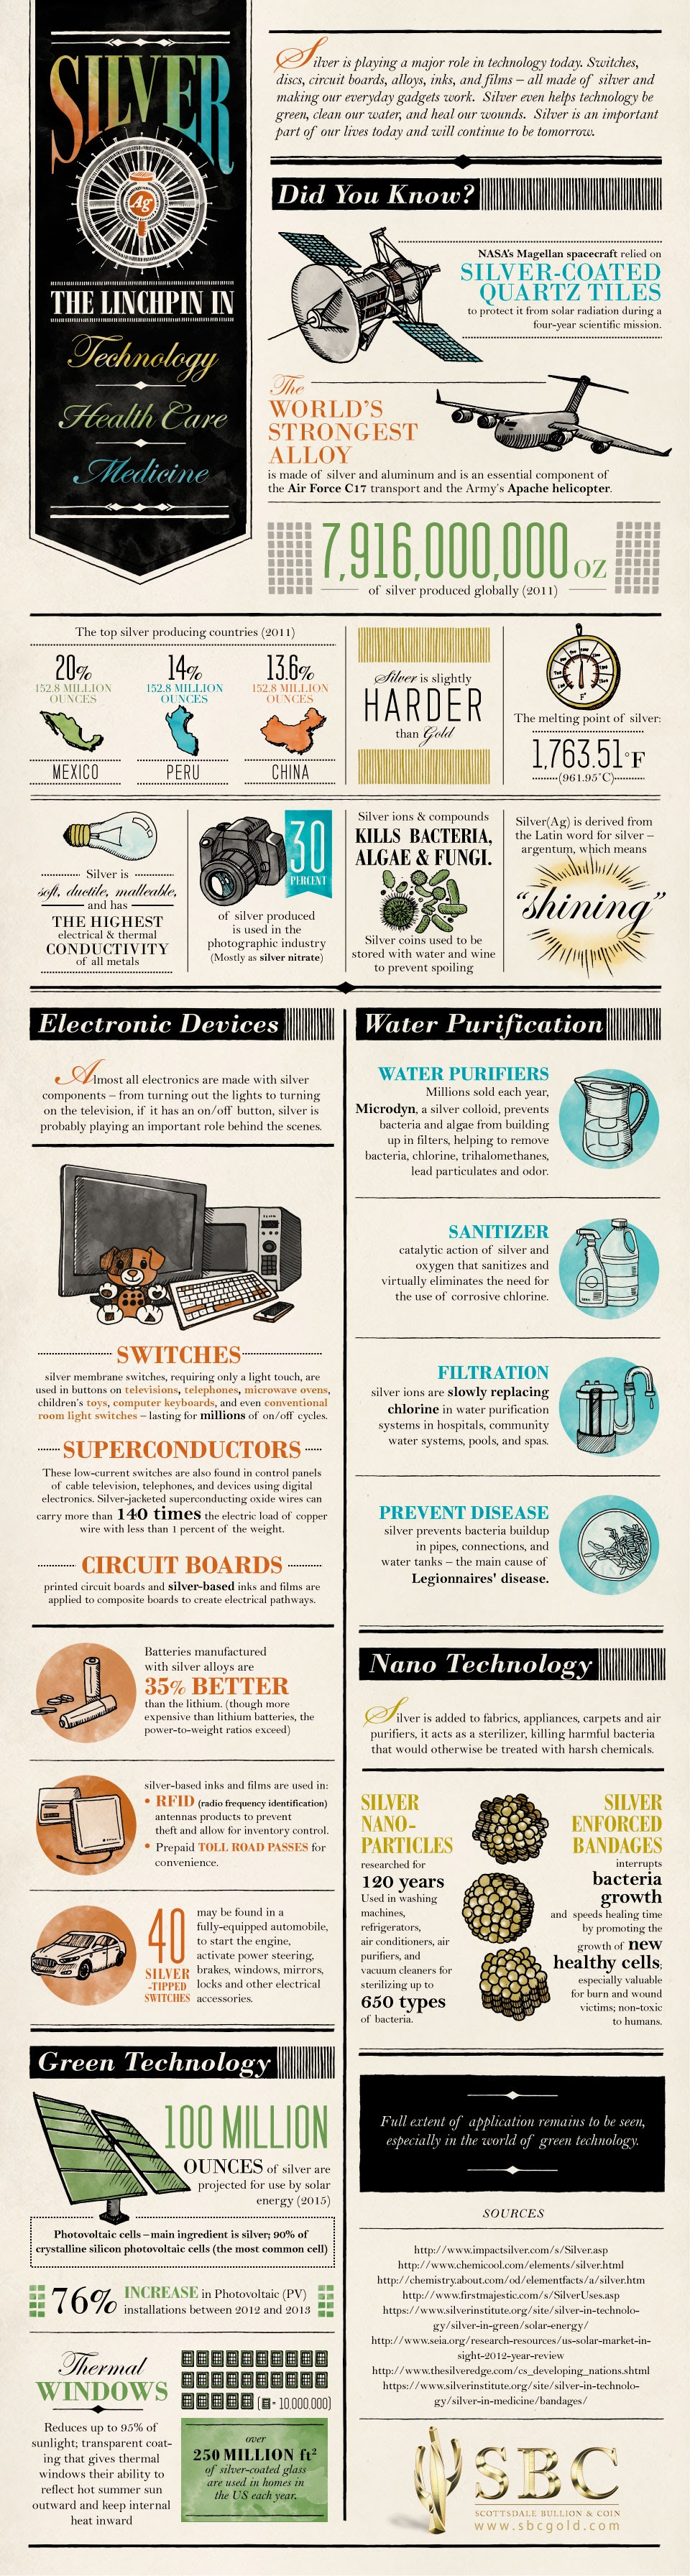 Facts-About-The-Importance-of-Silver-in-Technology #Infographic